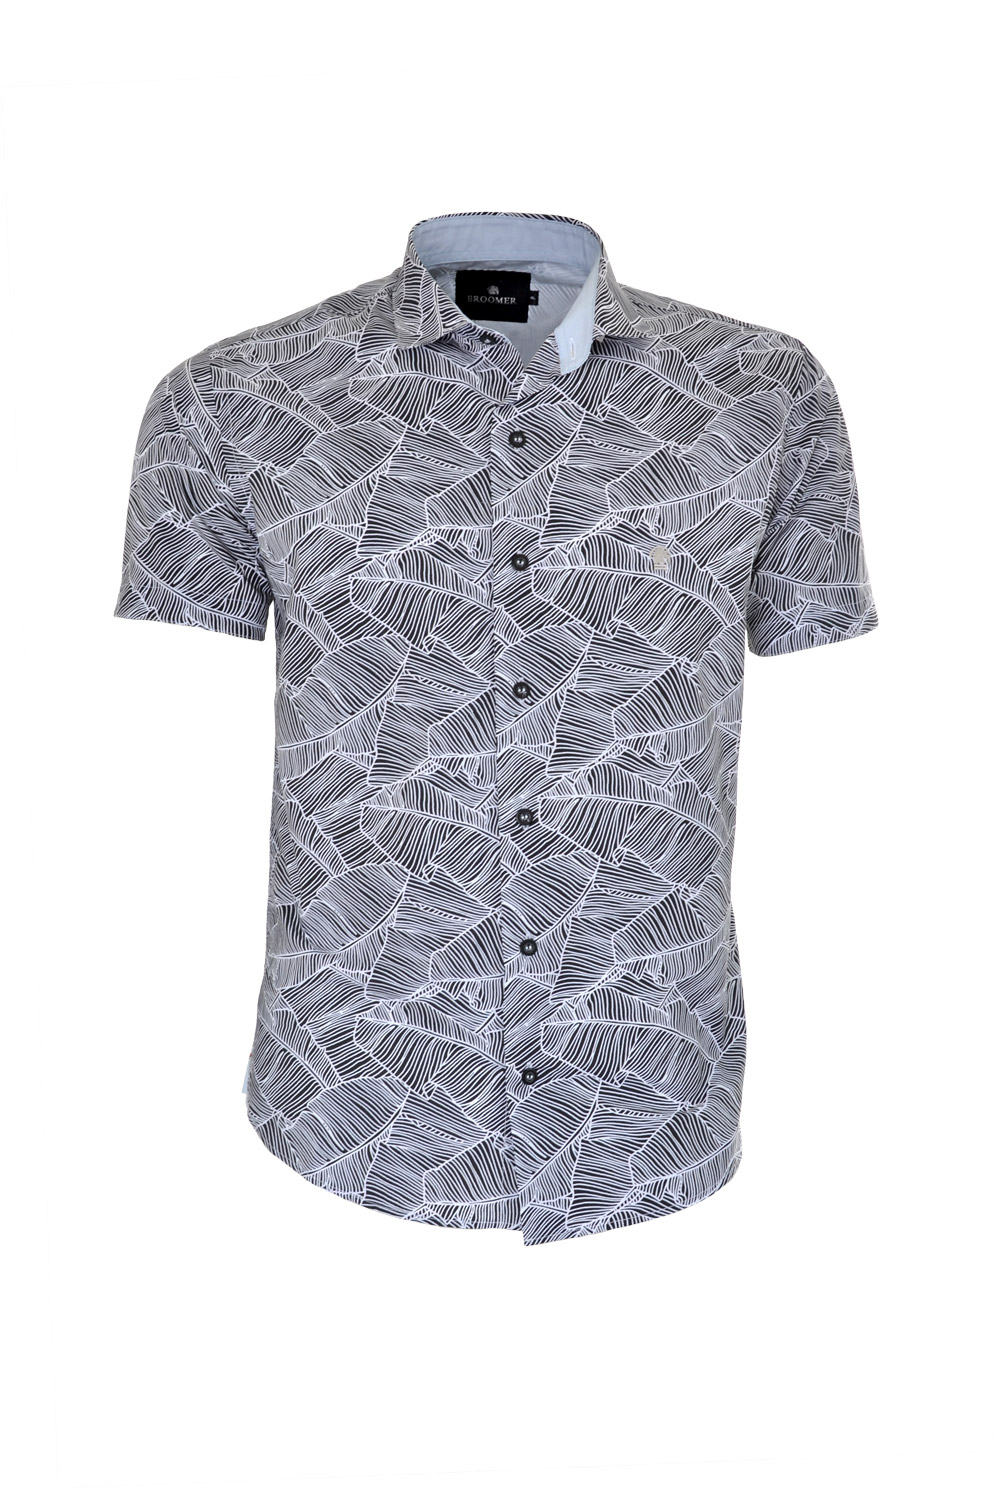 CAMISA MC BLUES SLIM ALGODAO COMPOSE ESTAMPA PRETO